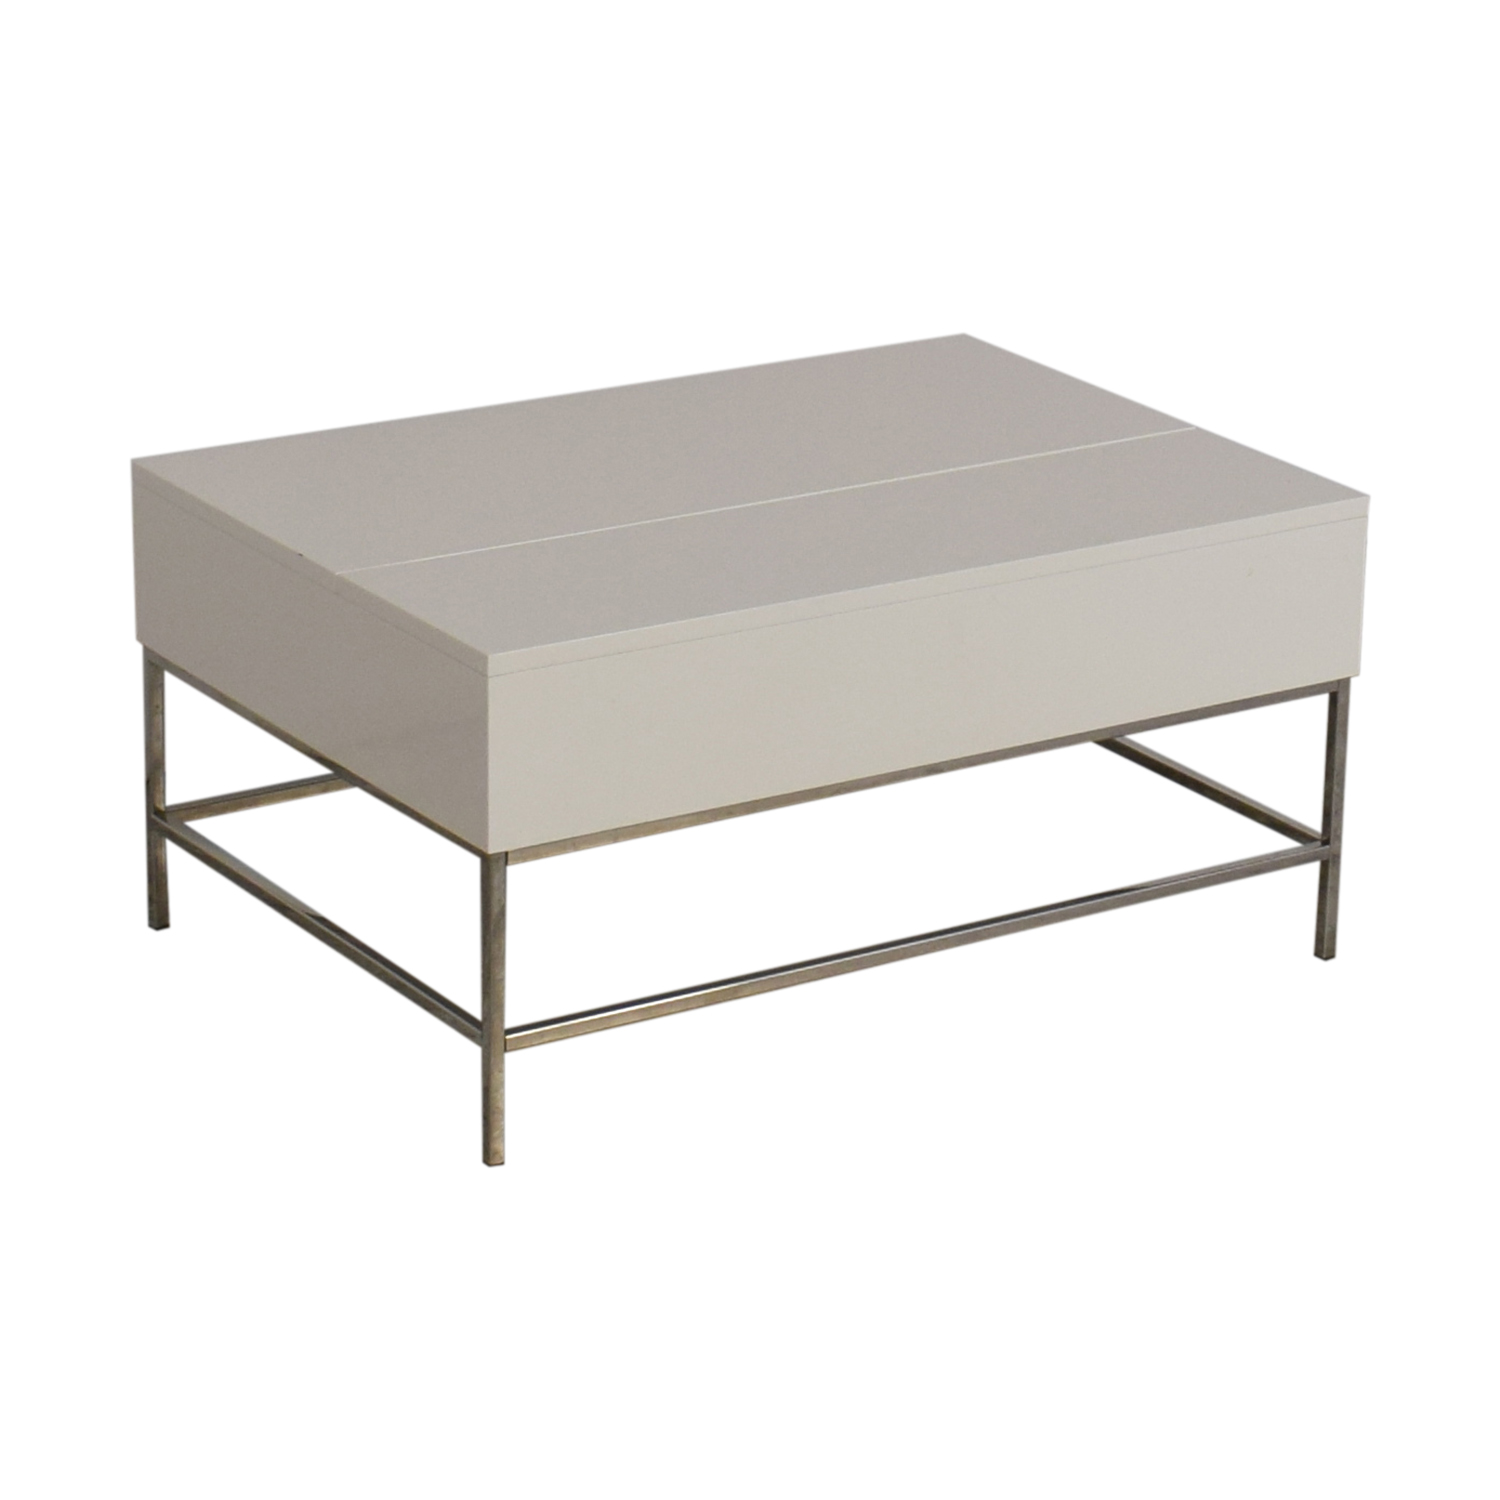 48 Off West Elm West Elm Lacquer Storage Coffee Table Tables